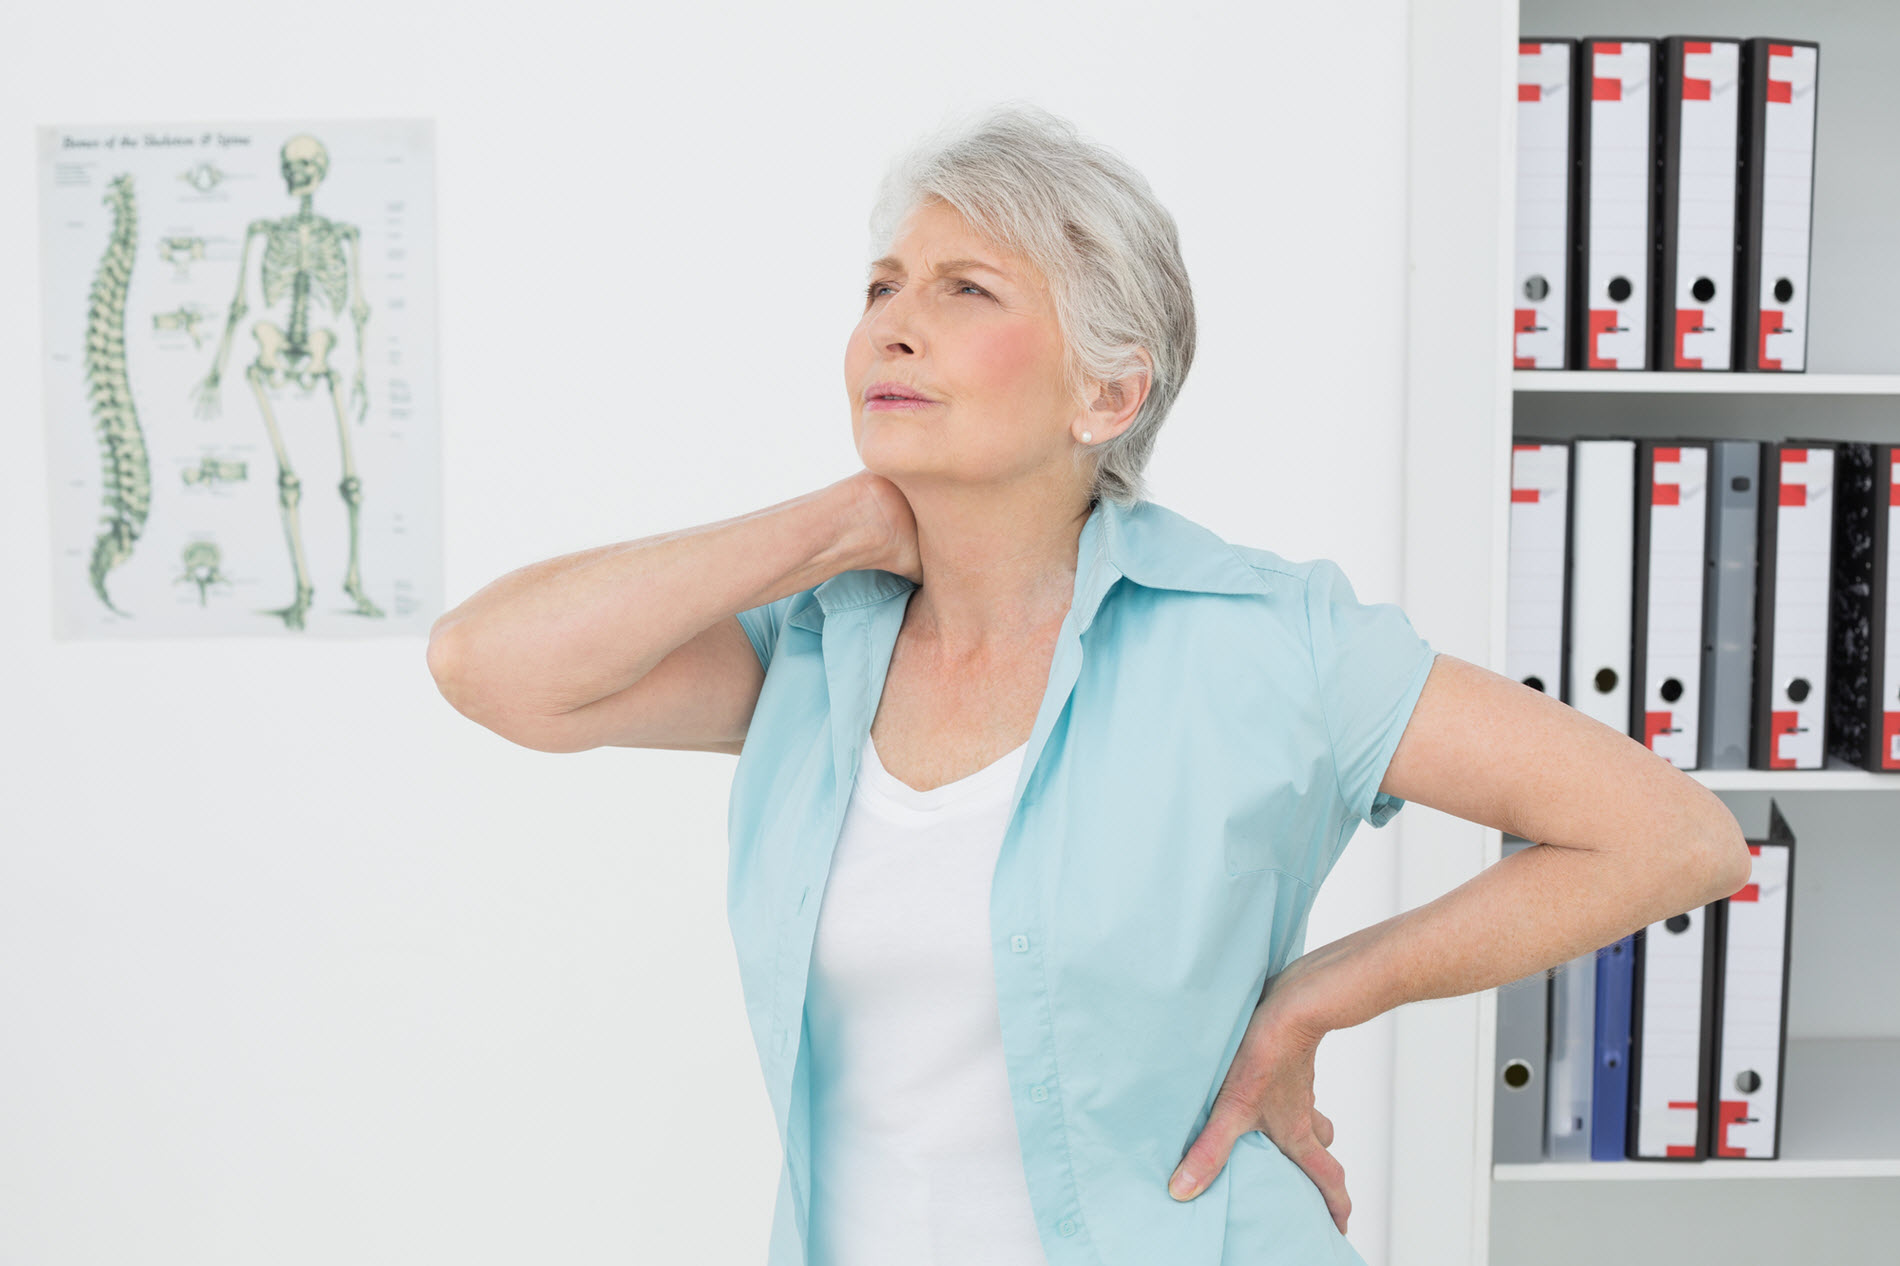 copy-of-pain-in-neck-and-back-lady-needs-chiropractor